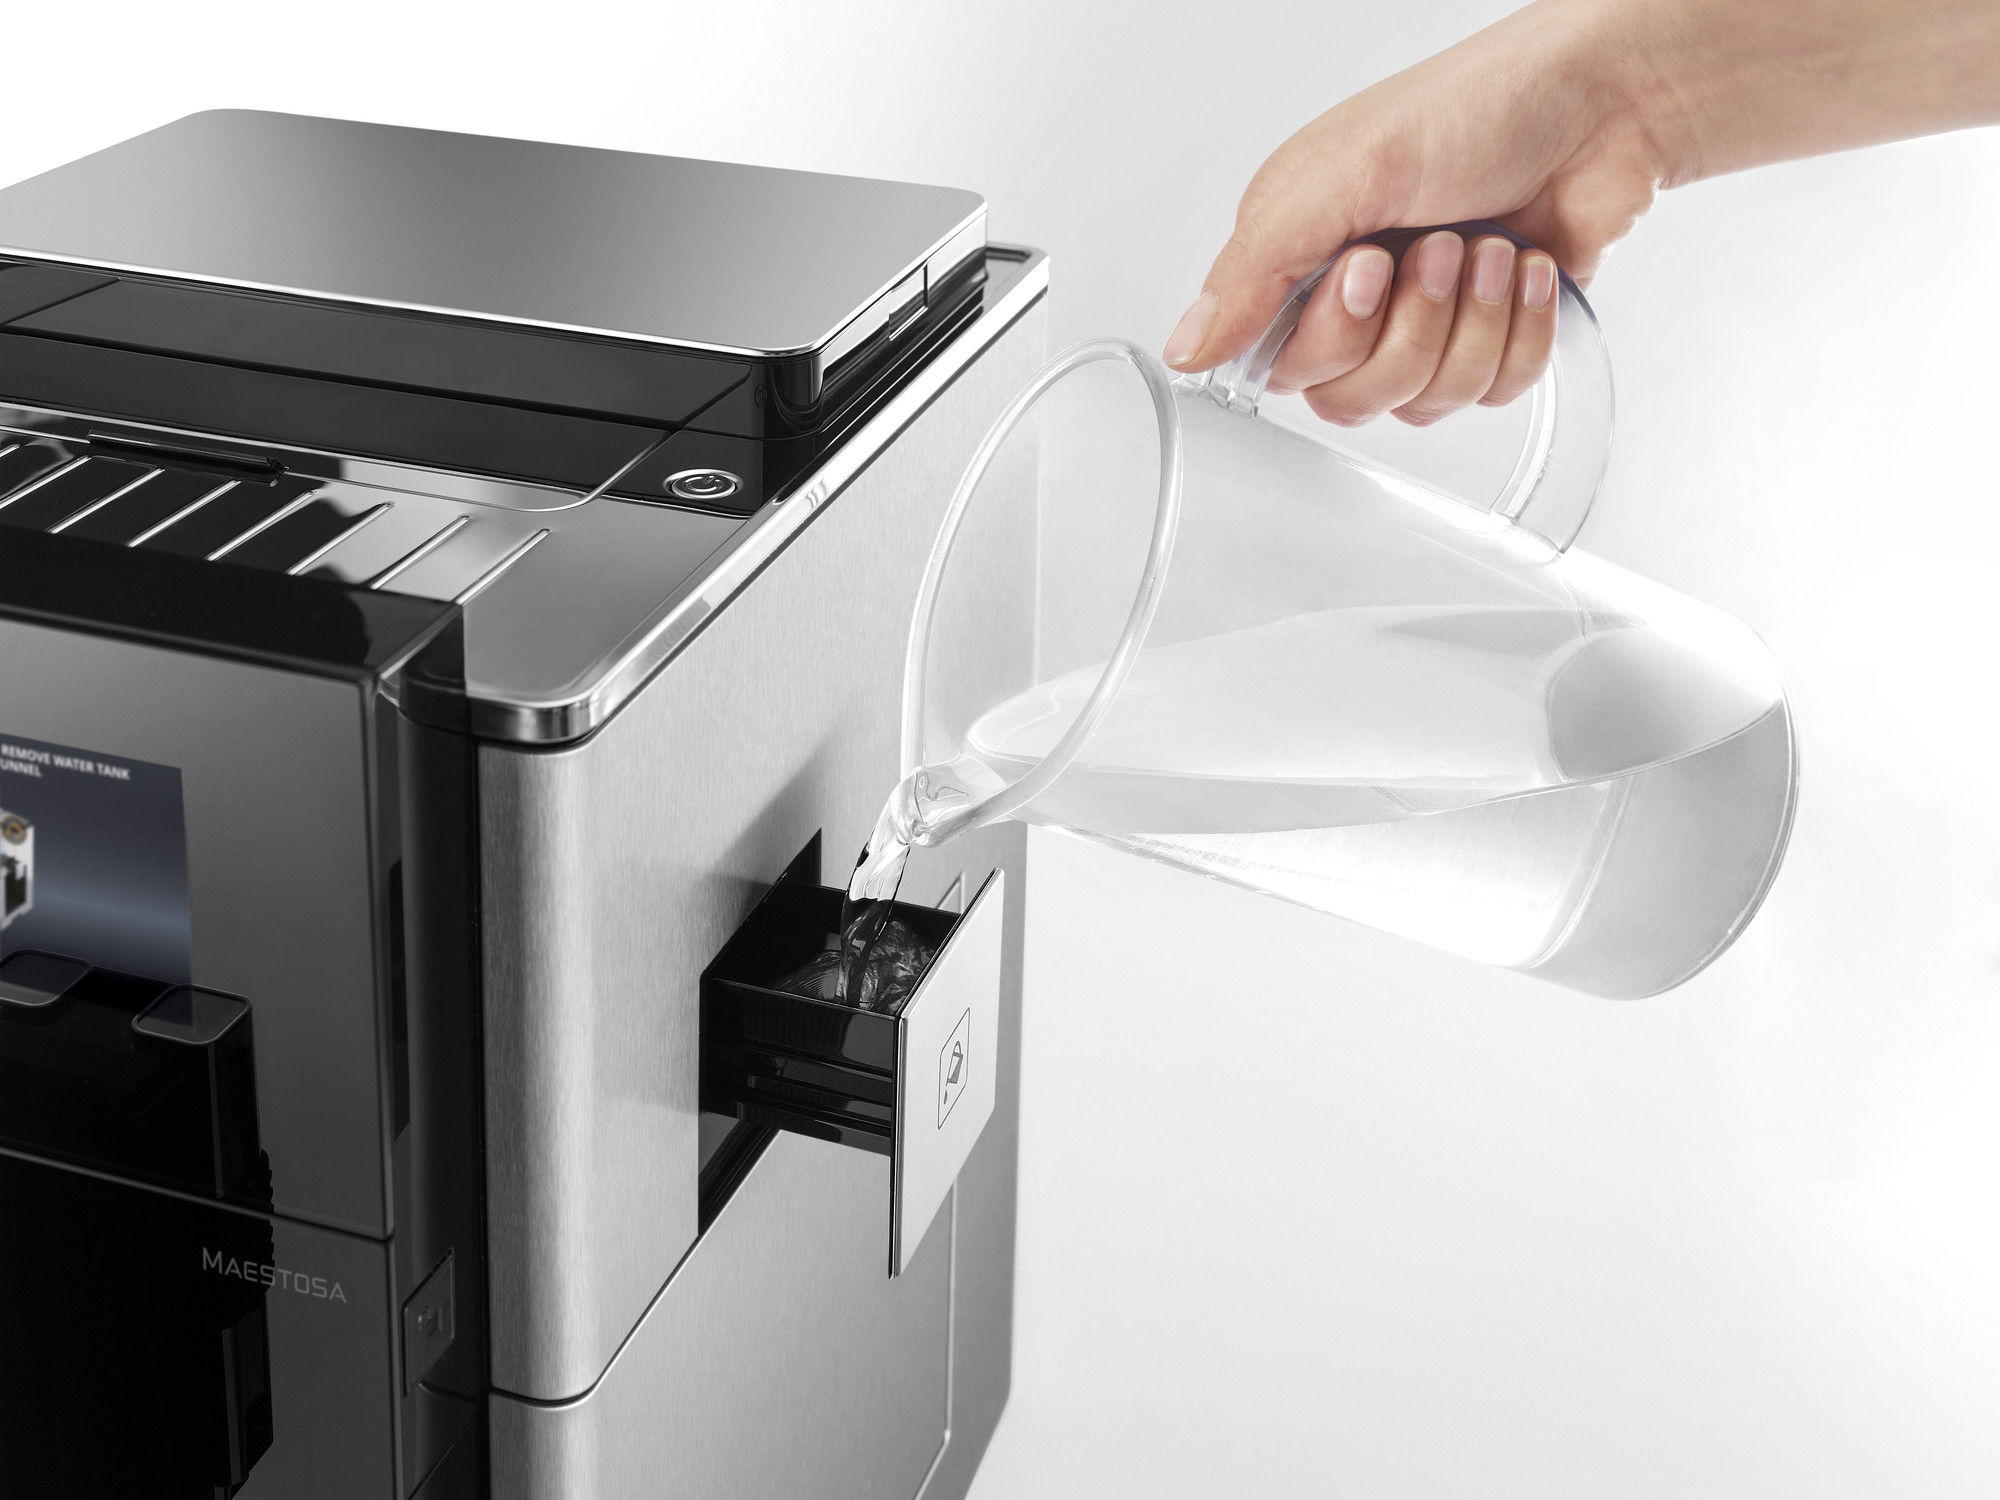 Pouring water into a coffee machine's water tank